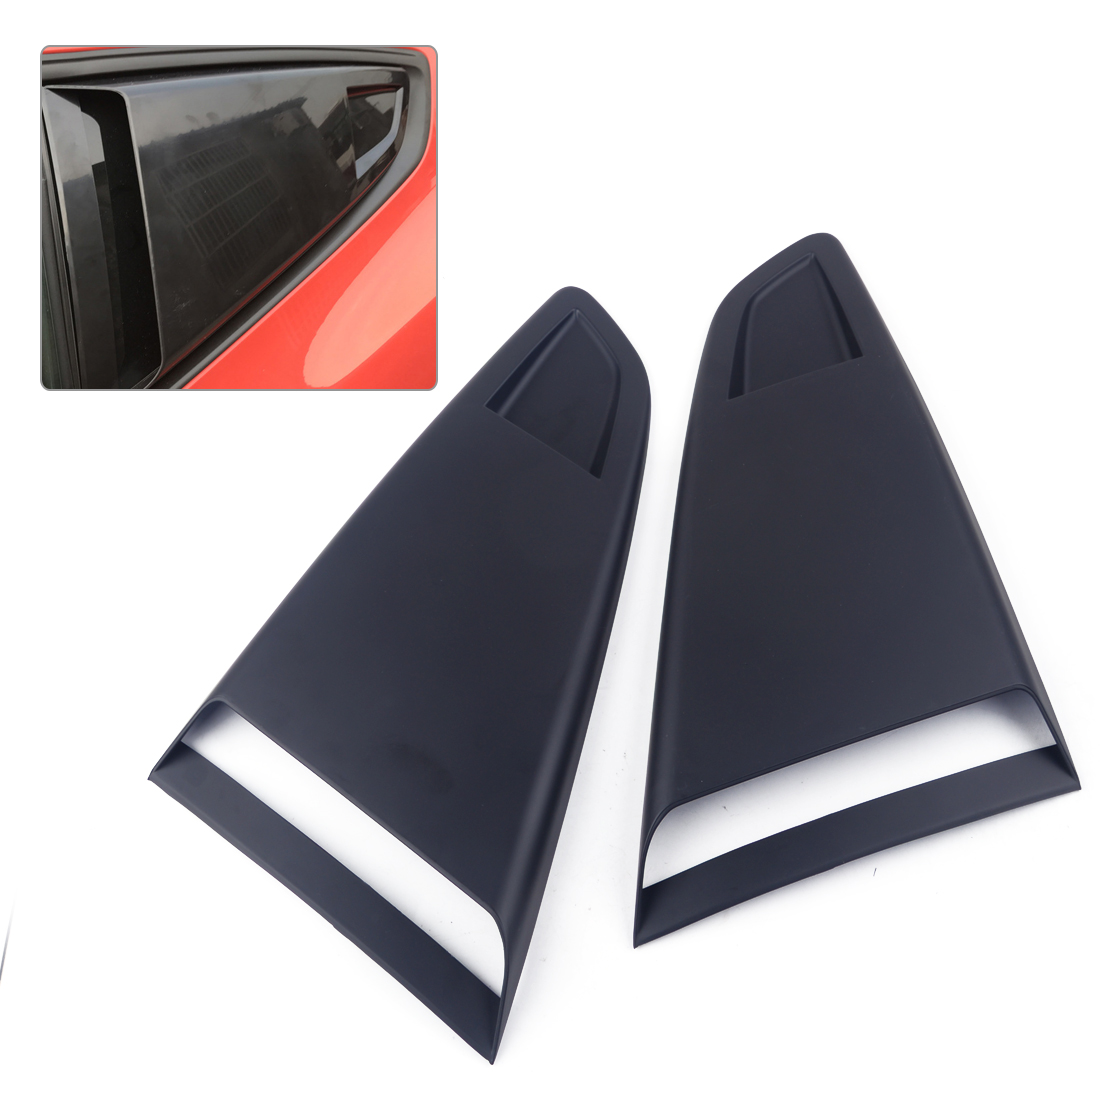 beler 1Pair Black Plastic Car Window Quarter Rear Louver Side Vent Scoop Cover Fit For <font><b>Ford</b></font> <font><b>Mustang</b></font> <font><b>2015</b></font> 2016 2017 2018 image